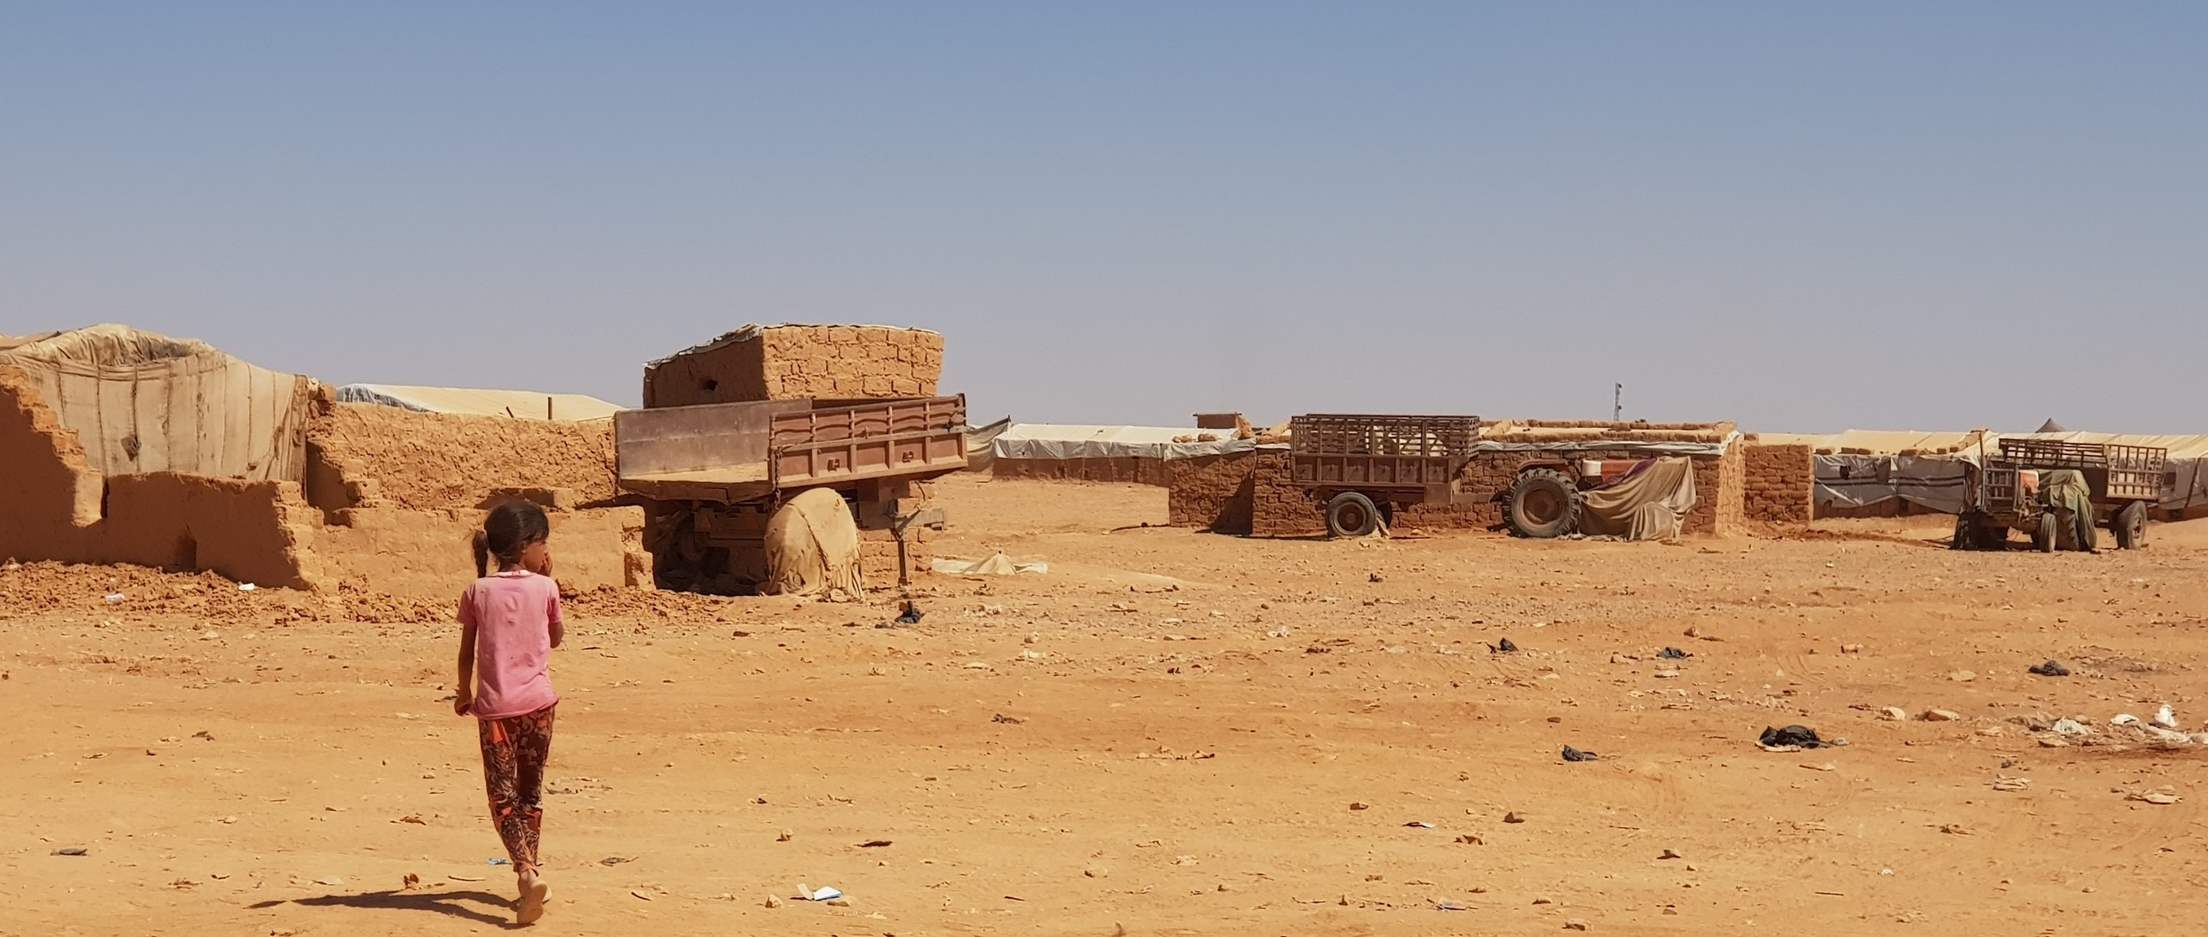 Jordan: Authorities must allow urgent medical care for displaced Syrians in Rukban during COVID-19